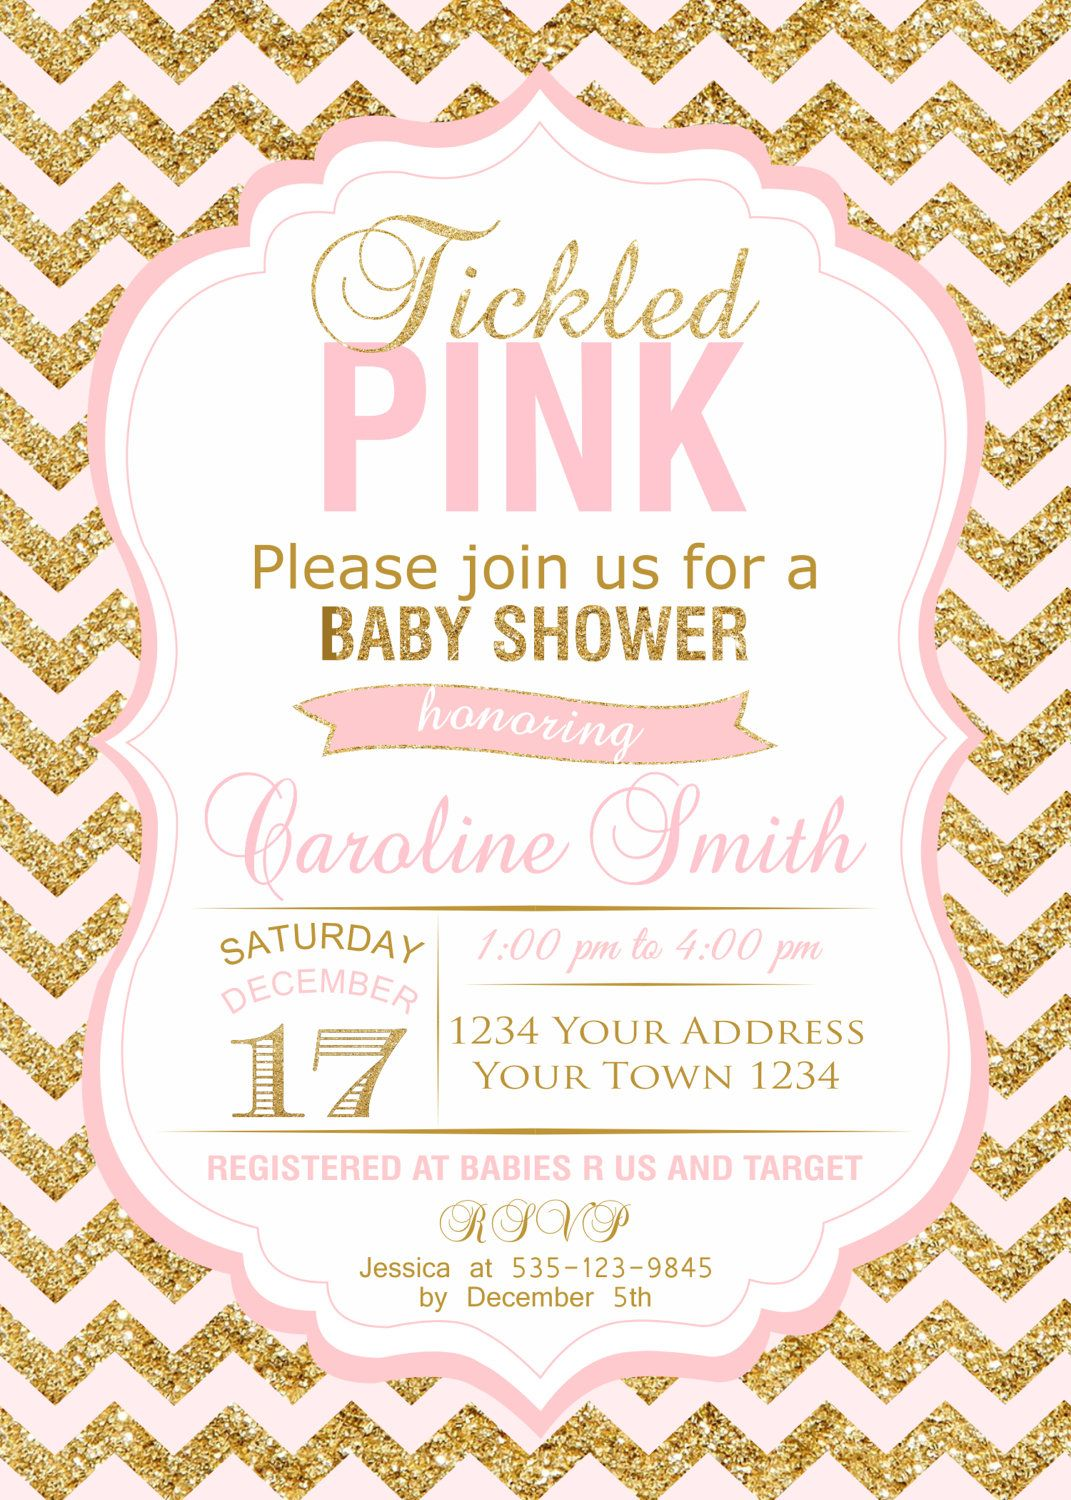 Baby Shower Invitations. Tickled Pink Baby Shower. Baby Girl. Gold ...